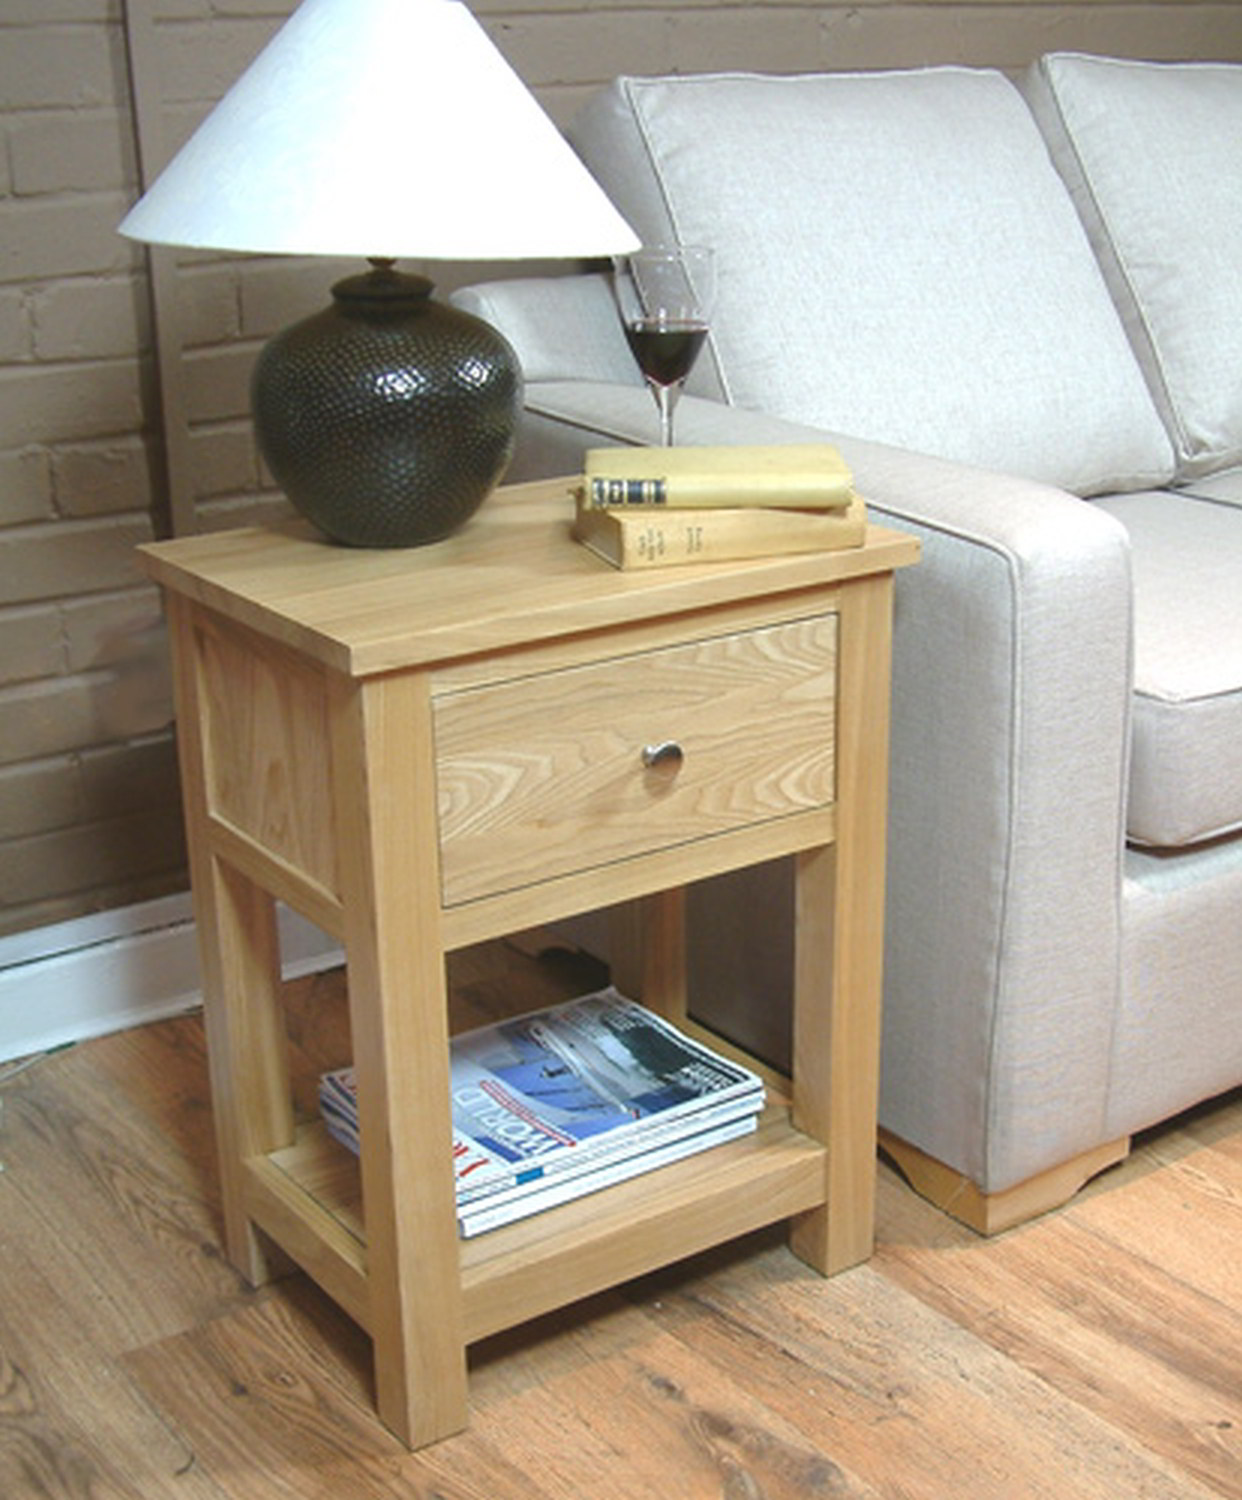 conran solid oak living room furniture side end lamp table